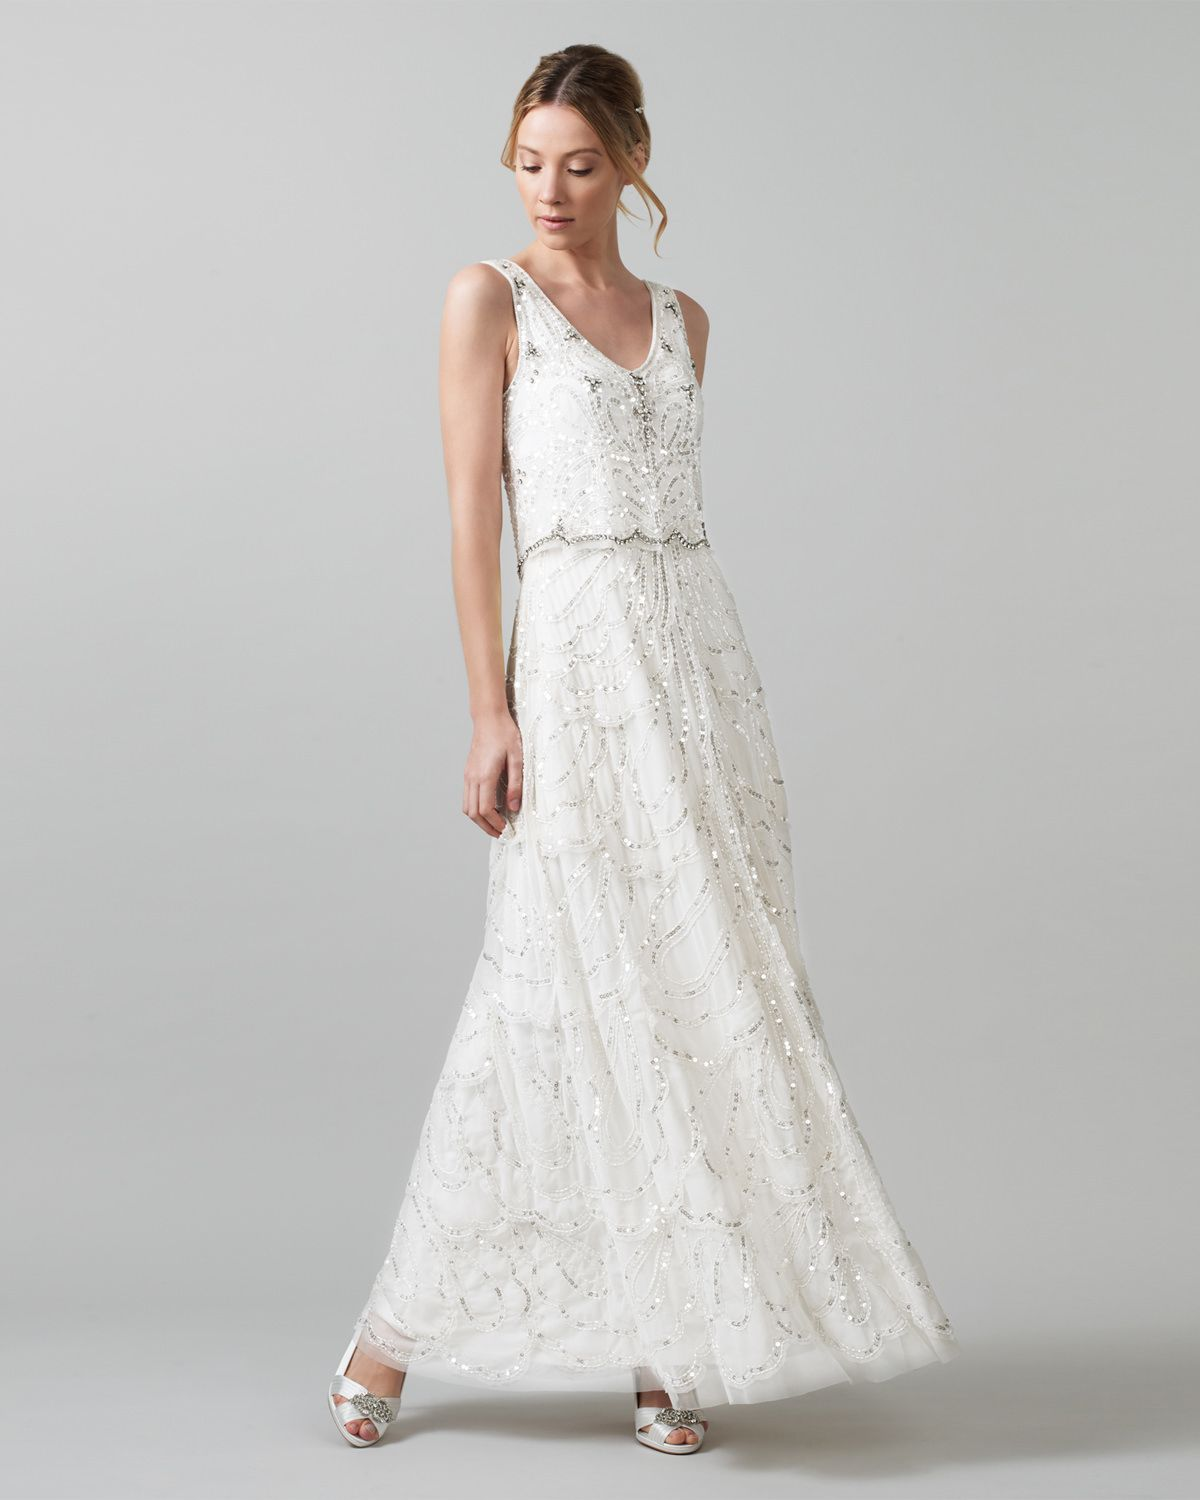 A vintage-inspired fully sequined wedding dress with a layered petal ...